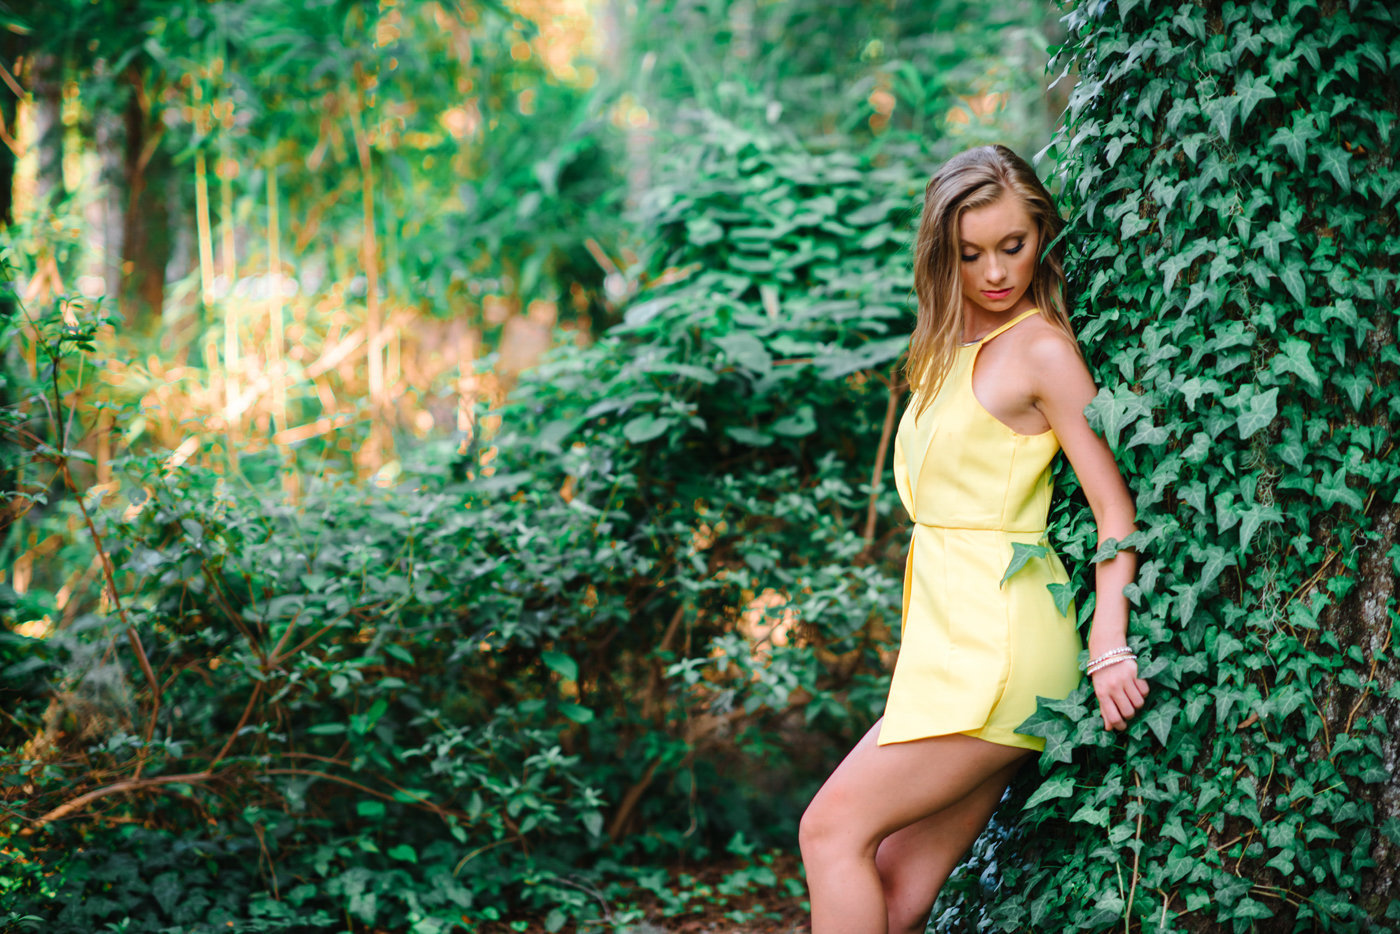 myrtle beach senior photography - senior pictures by top Myrtle Beach Senior Photographer Pasha Belman